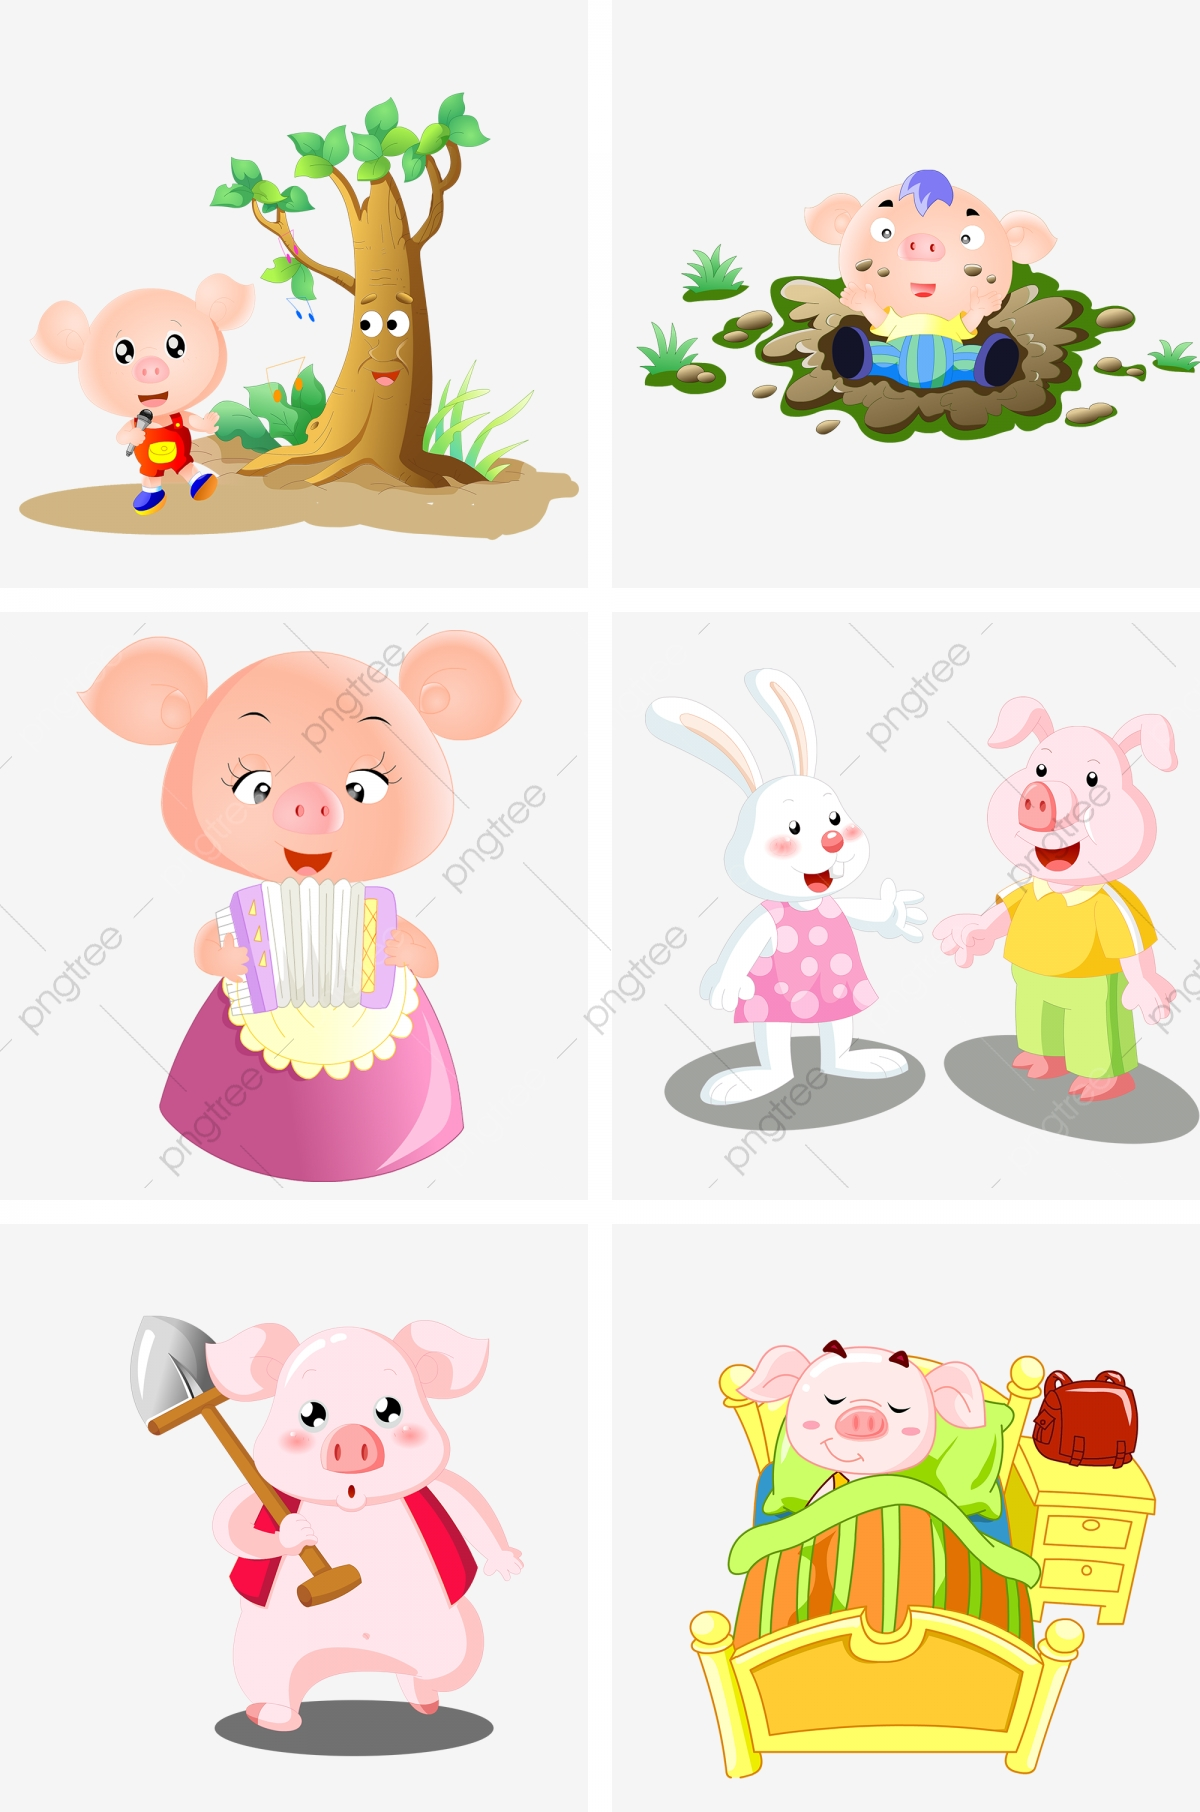 Pig Illustration Collection Singing Under The Pig Tree Pig Playing Mud Pig And Accordion Pig And Rabbit Chat Pig Life Scene Pig Labor Png Transparent Clipart Image And Psd File For Free